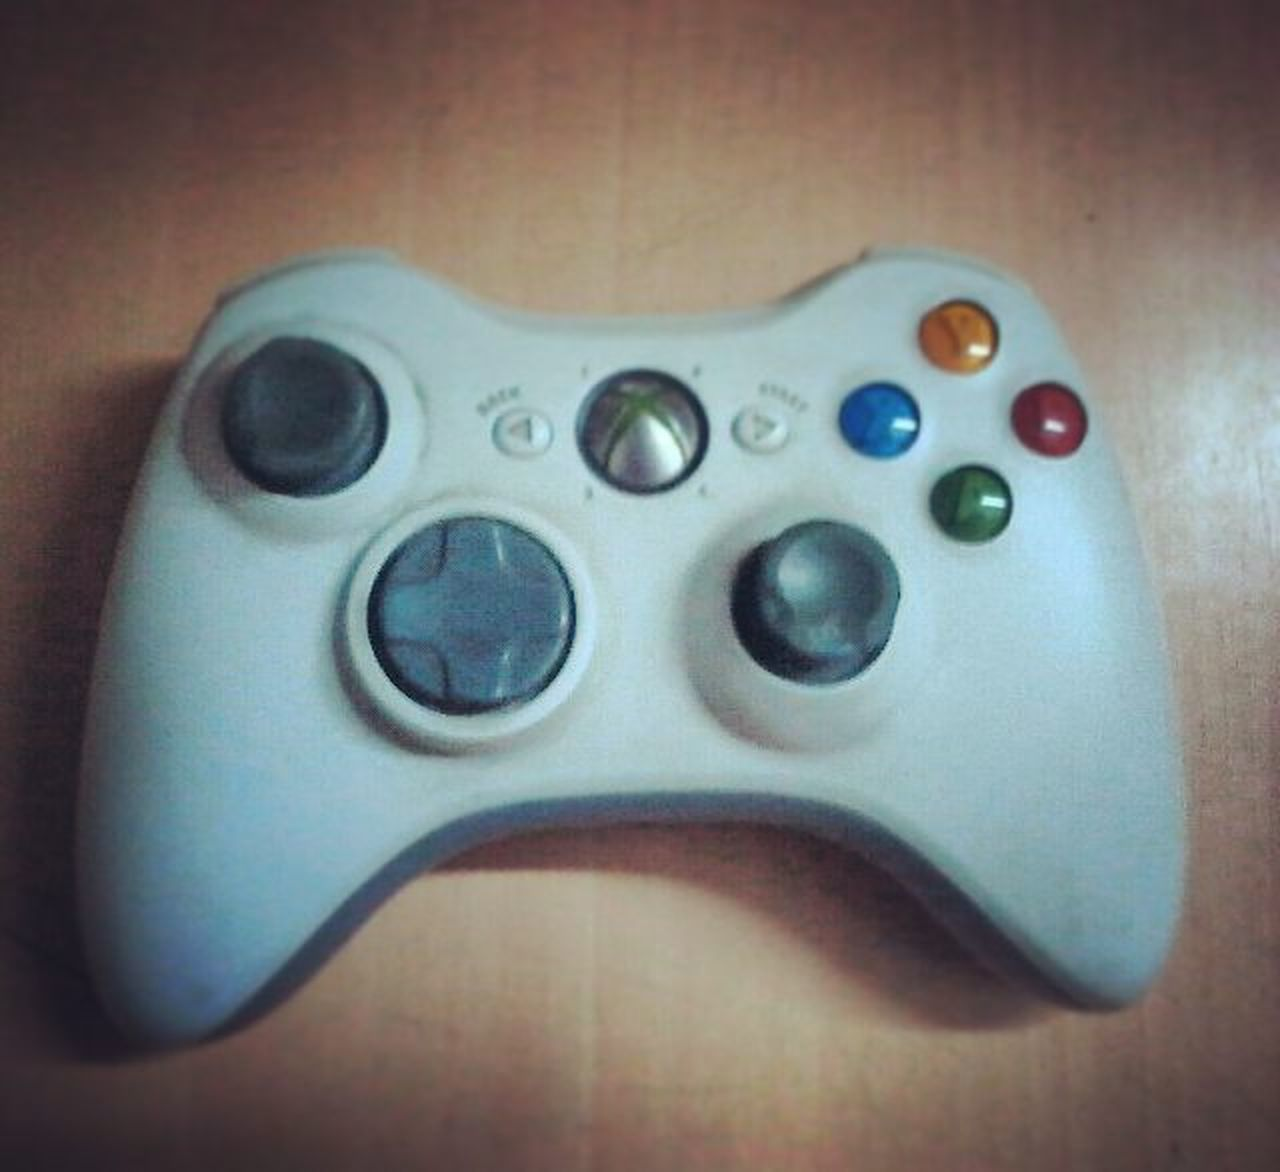 Xbox360 Controller Gamer Gaming Xbox Lifeisgood Herewego Microsoft Lovely Lovelyday Nerd Accessory Gadget Xboxgaming Life India Gaminglife Karnataka Southindia Geek Gamers